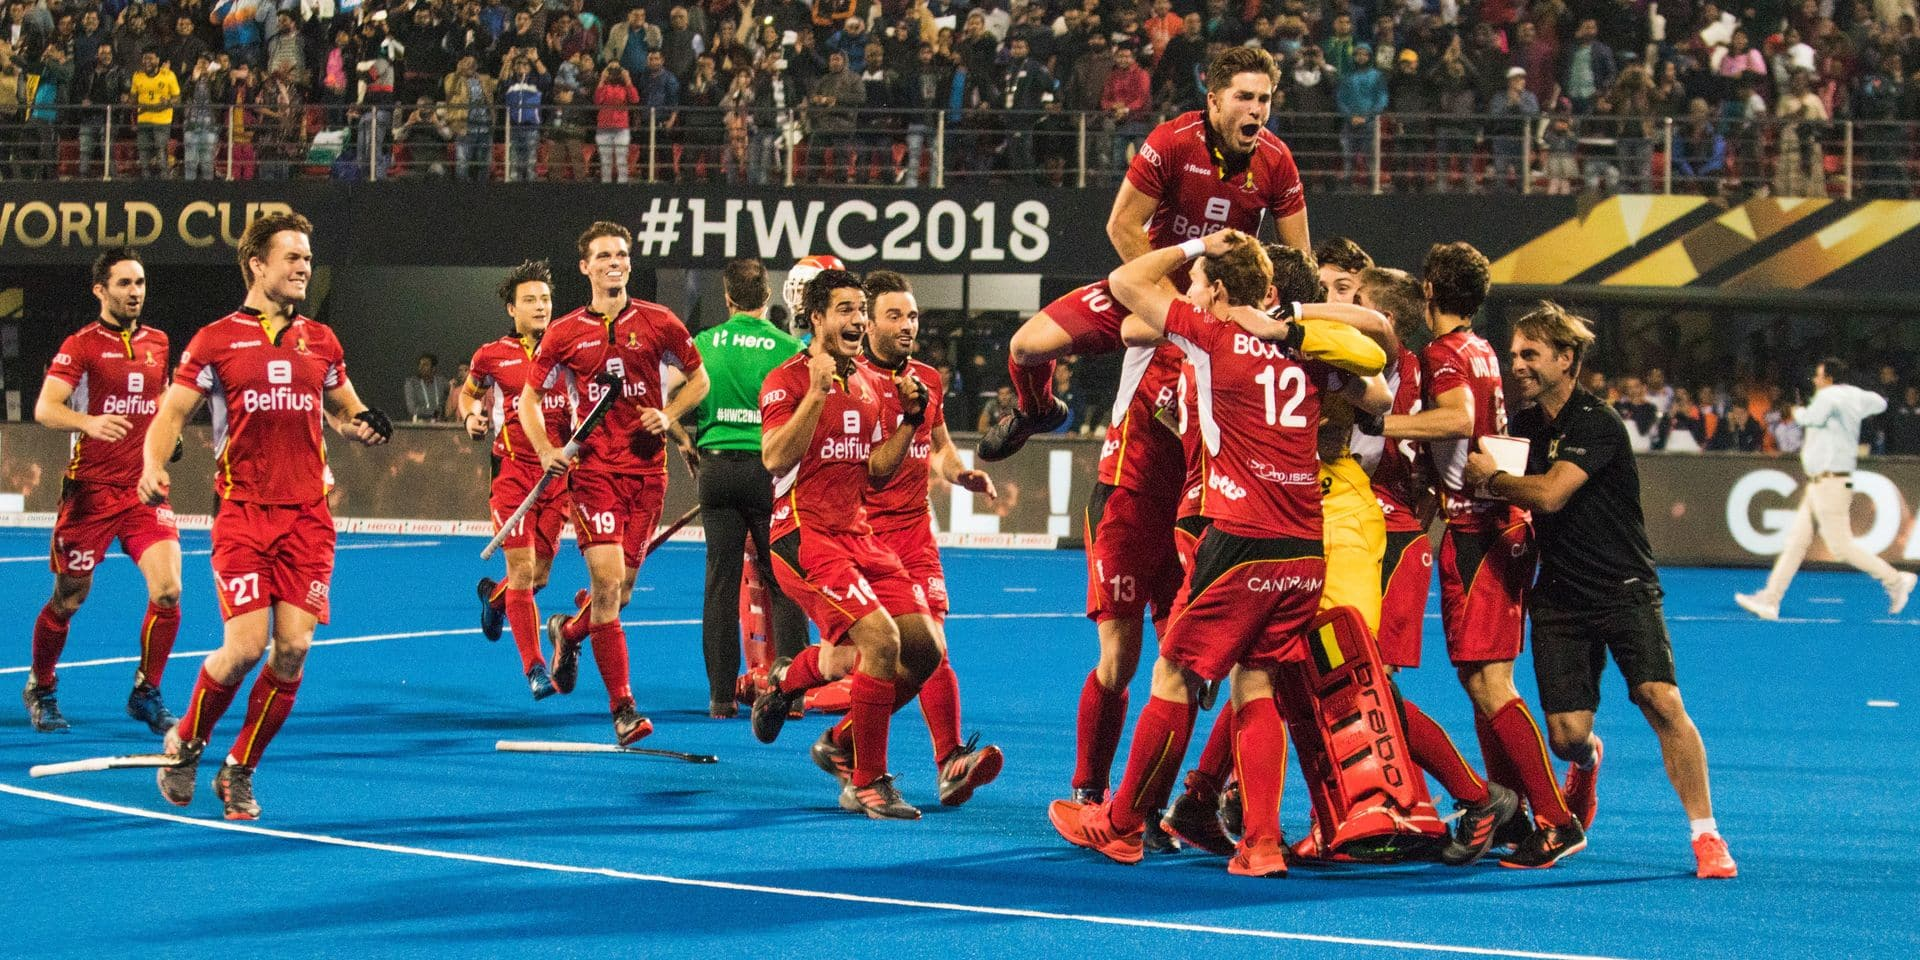 Belgium Red Lions celebrate their world hockey championship title the final game between Belgian national hockey team the Red Lions and The Netherlands in Bhubaneswar, India, at the hockey World Cup, Sunday 16 December 2018. BELGA PHOTO SEBASTIEN TECHY